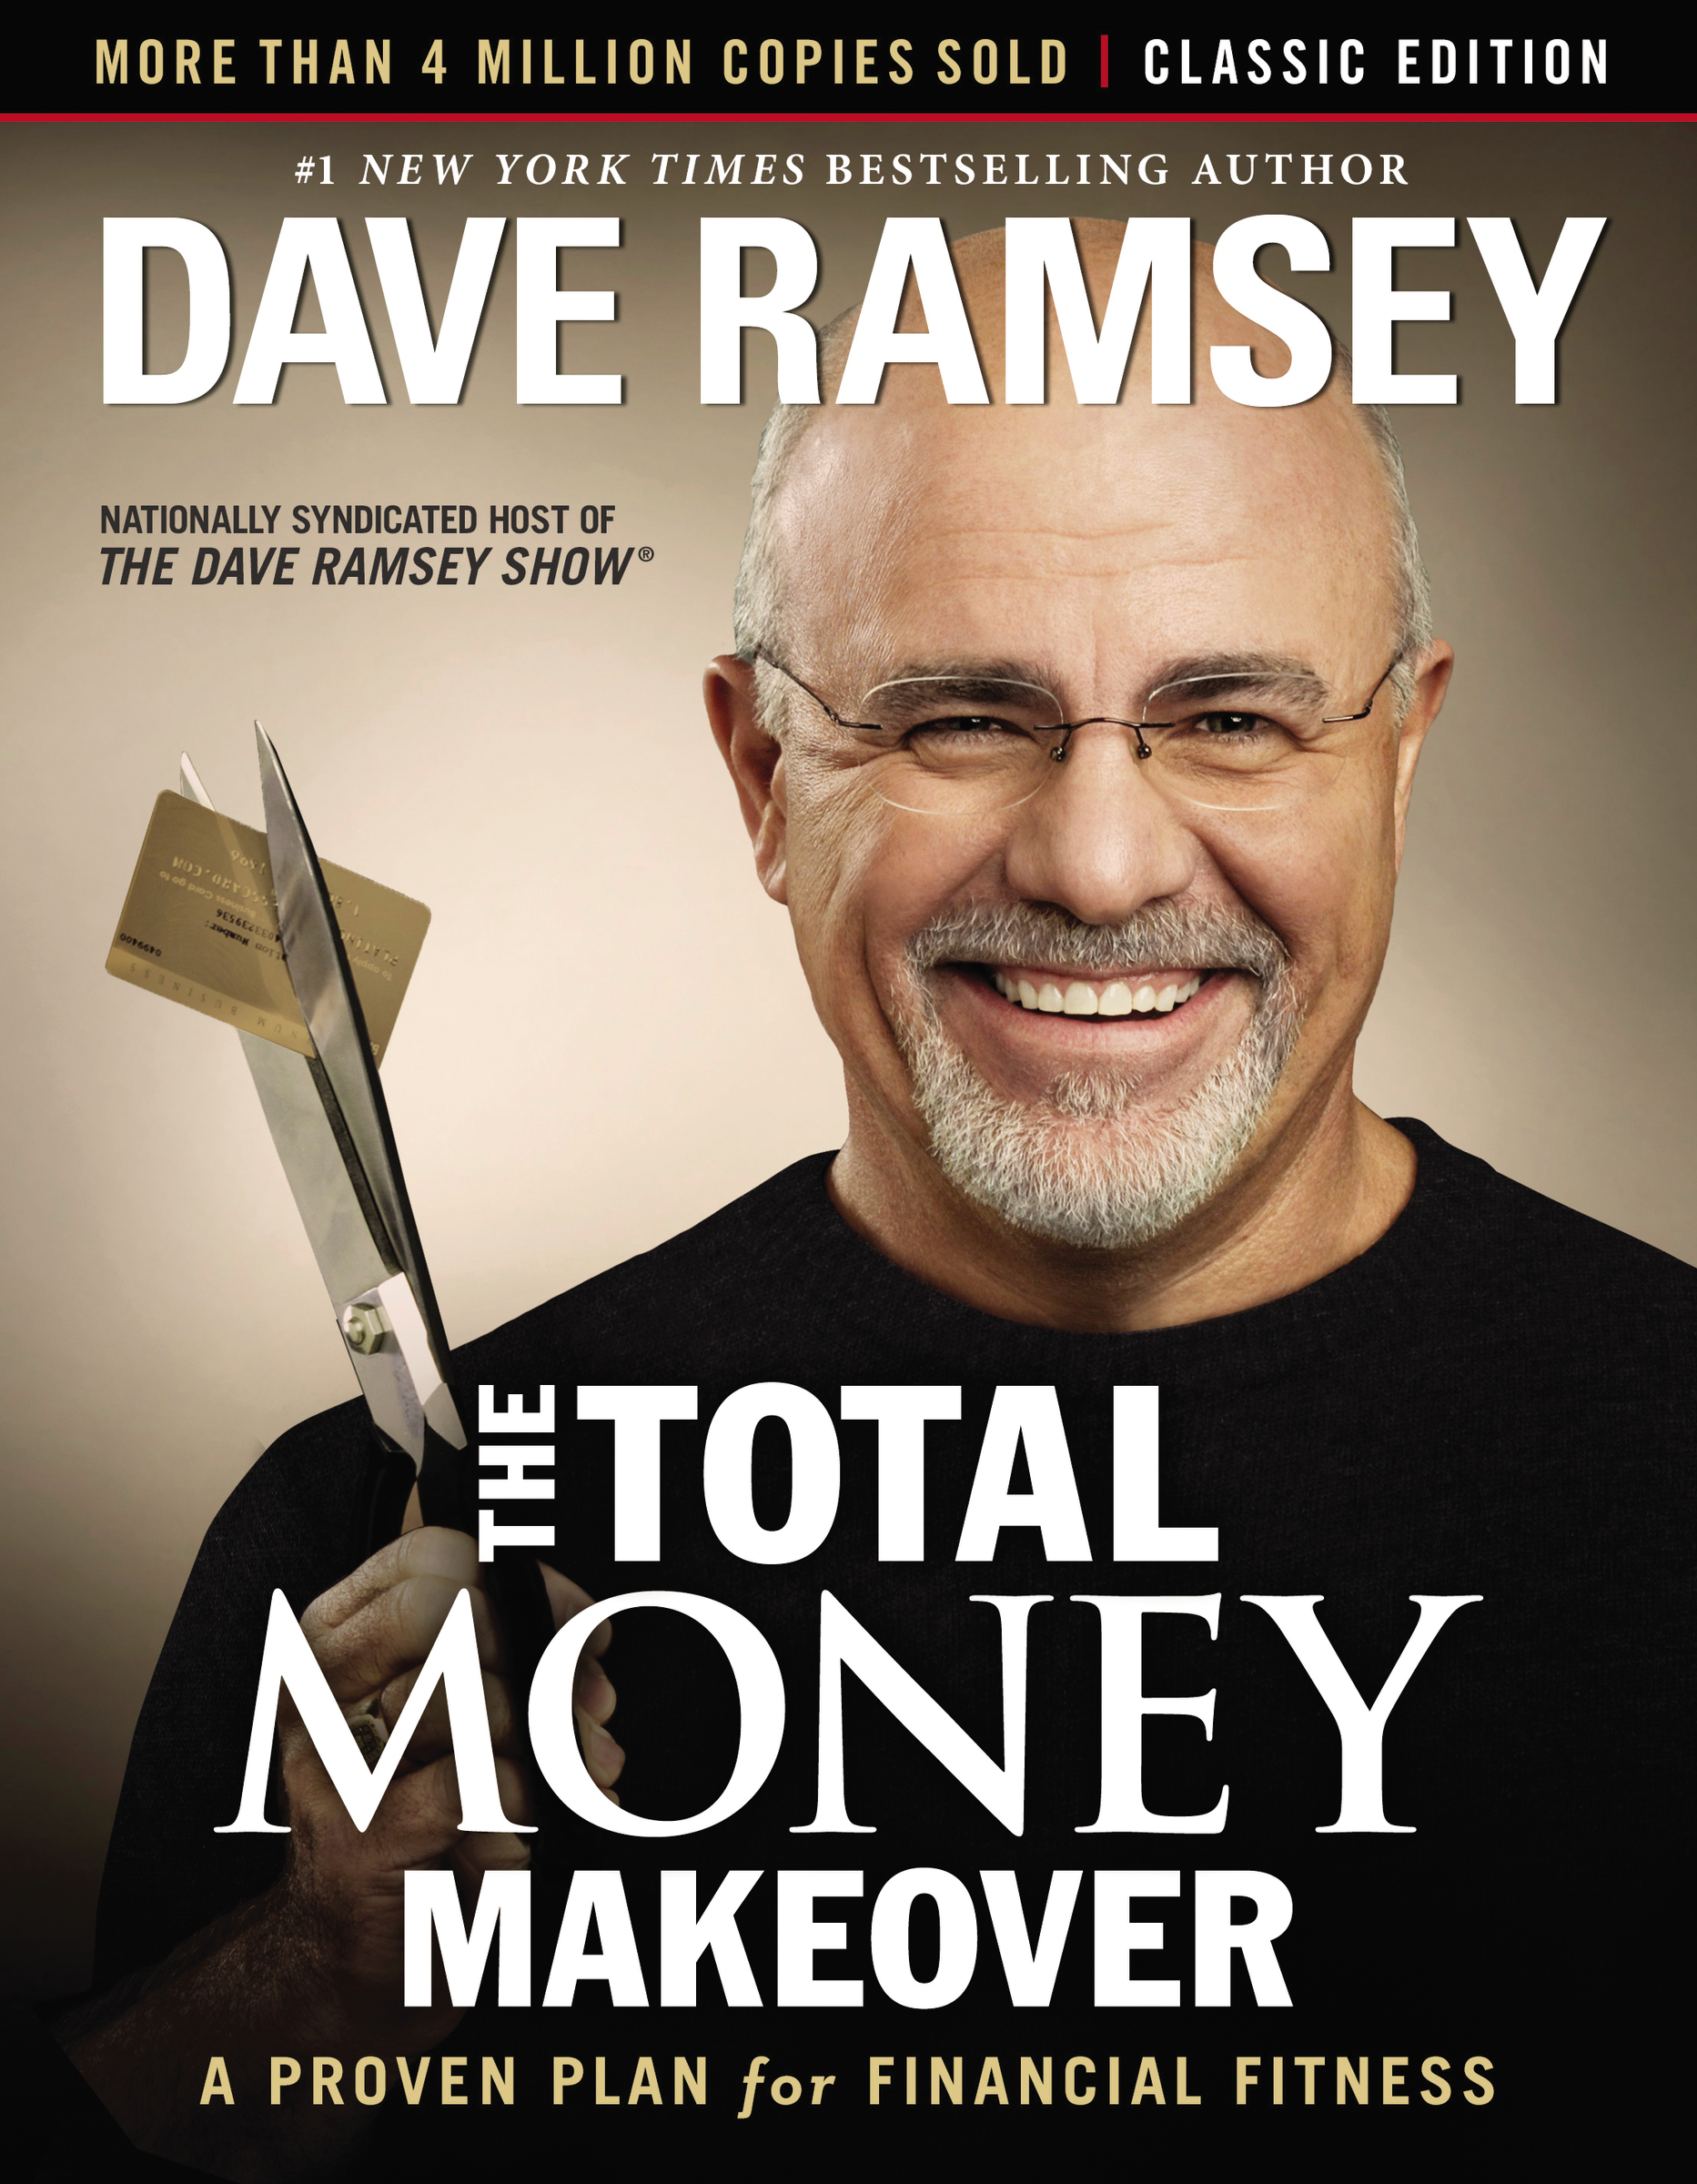 The total money makeover: classic edition : A Proven Plan for Financial Fitness